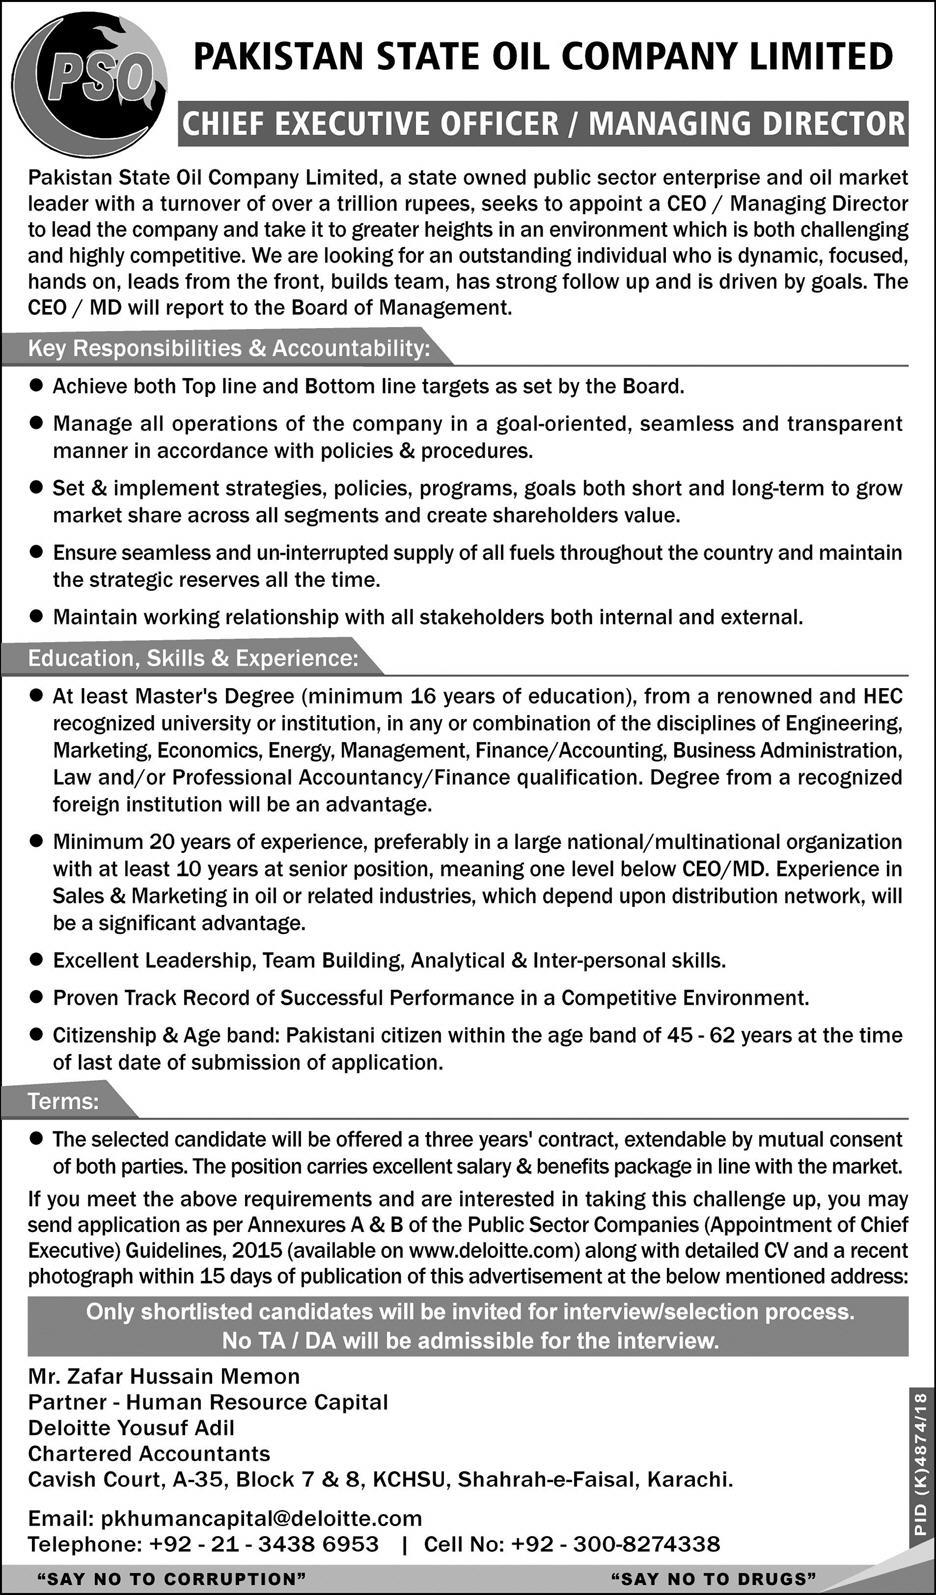 PSO CHIEF EXECUTIVE OFFICER / MANAGING DIRECTOR JOBS